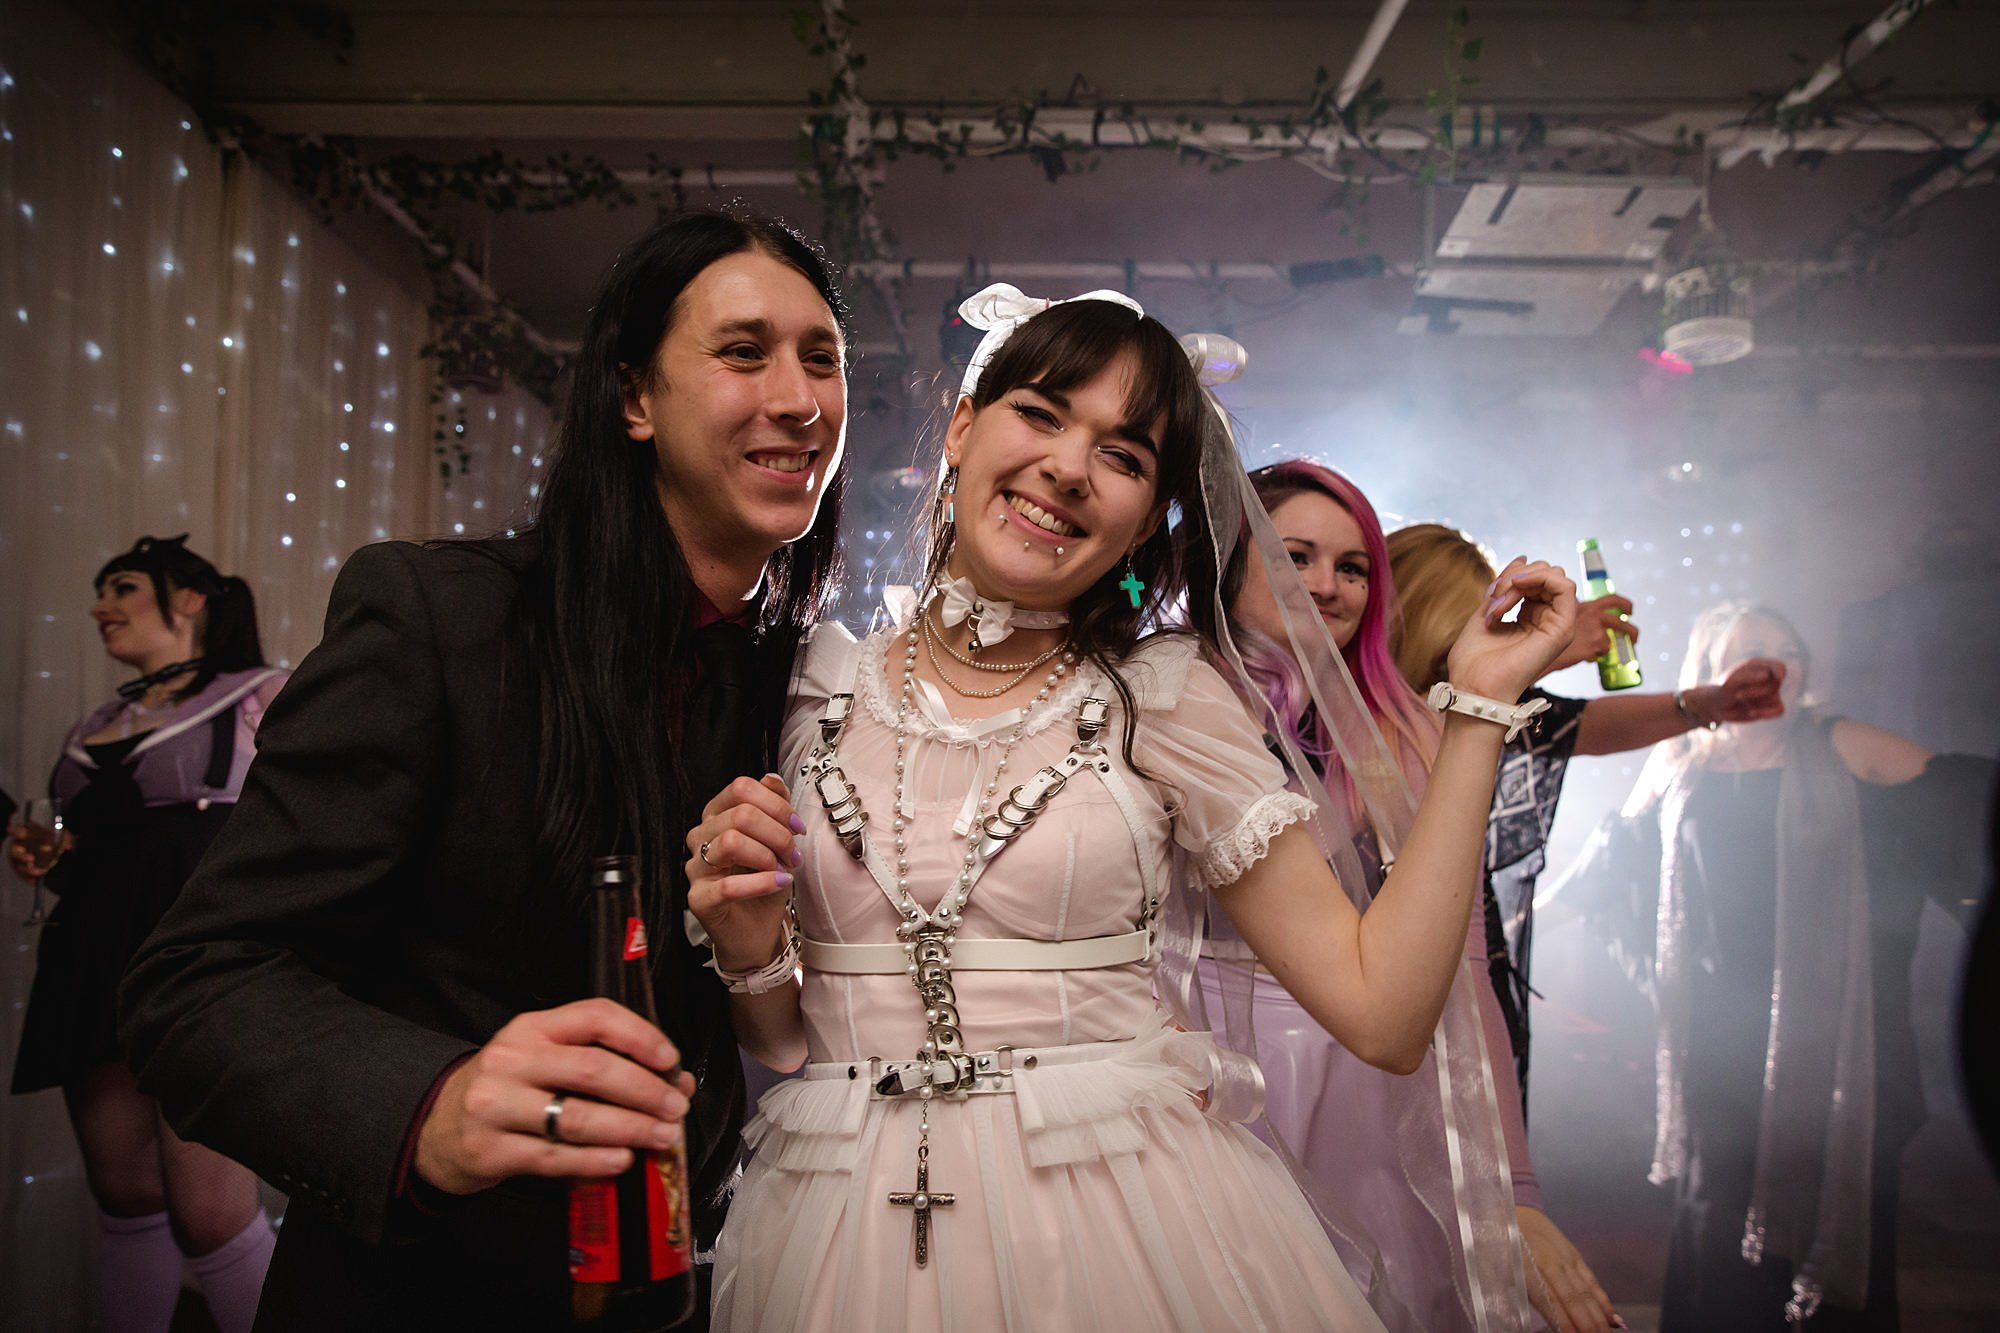 bride and guests dance together at goth wedding